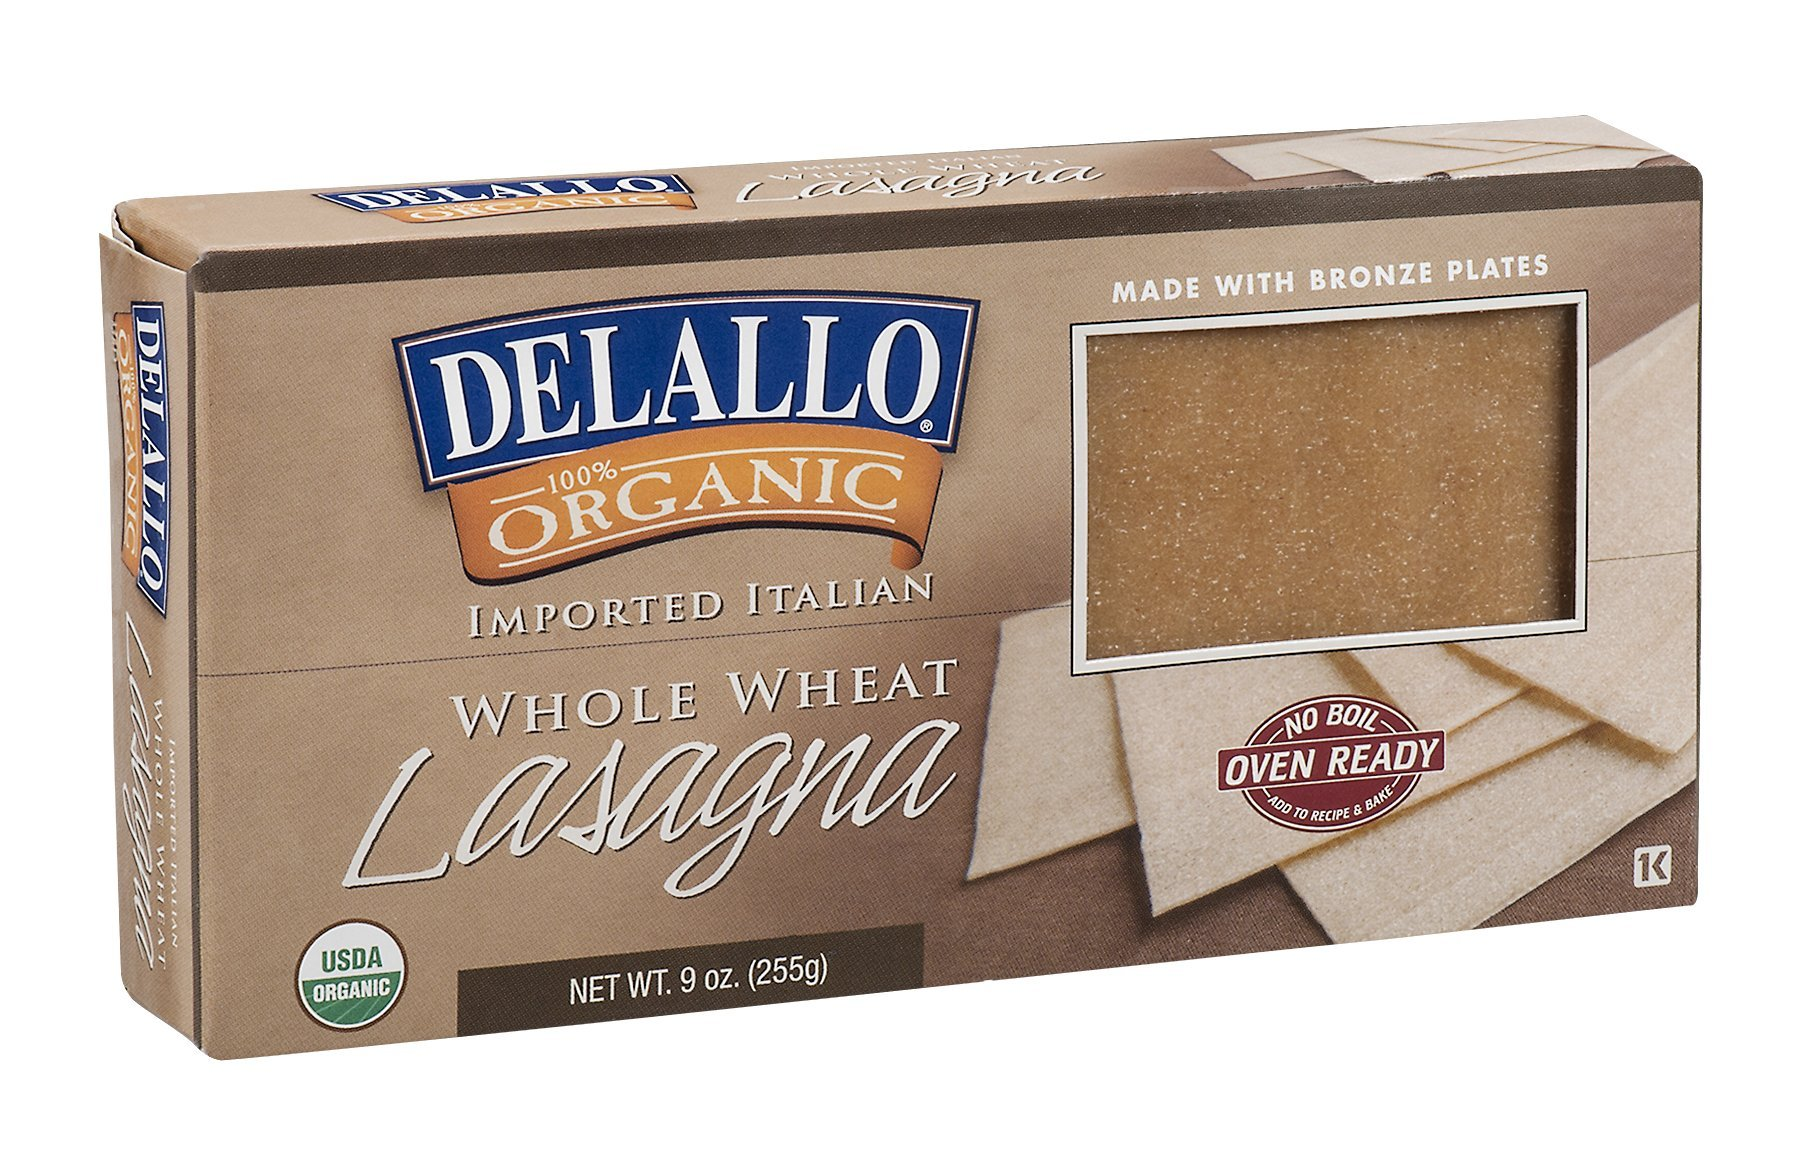 DELALLO LASAGNA WHLWHT, 9 OZ by DeLallo